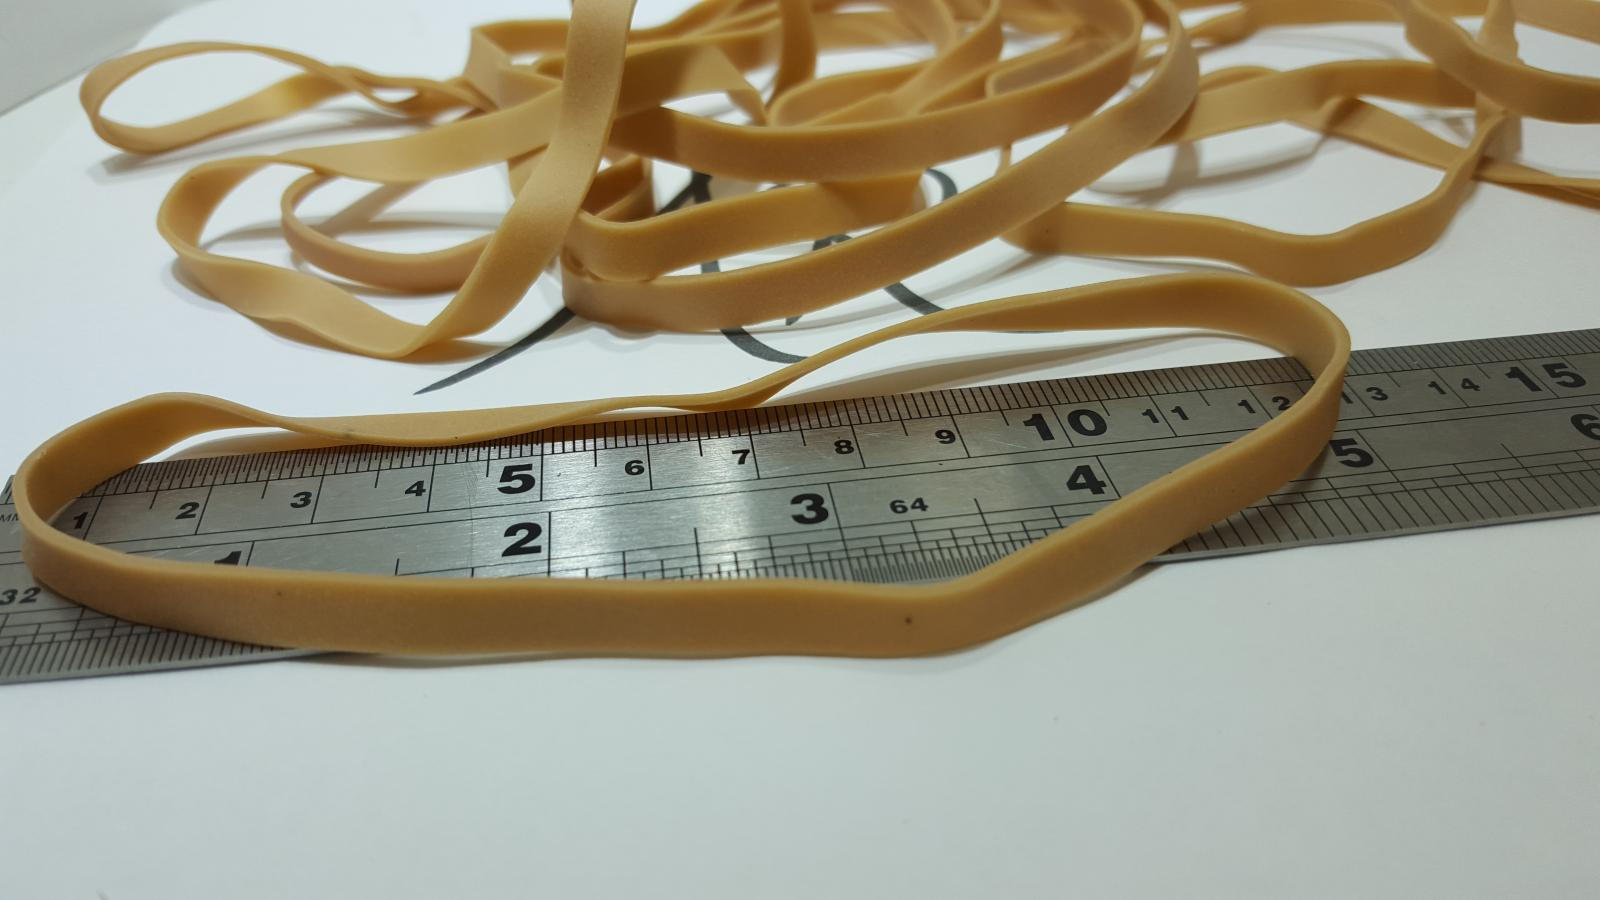 740g Pack of Elastic RUBBER BANDS - Range of sizes available